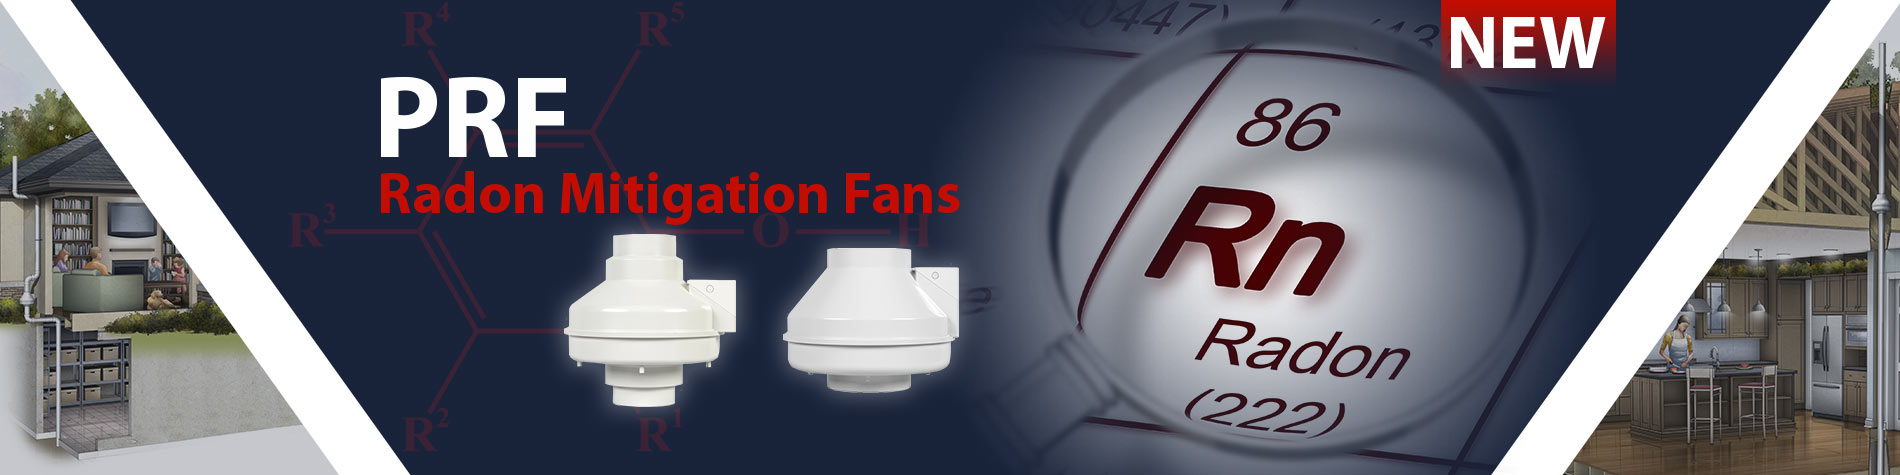 New PRF Series - Radon Mitigation Fans